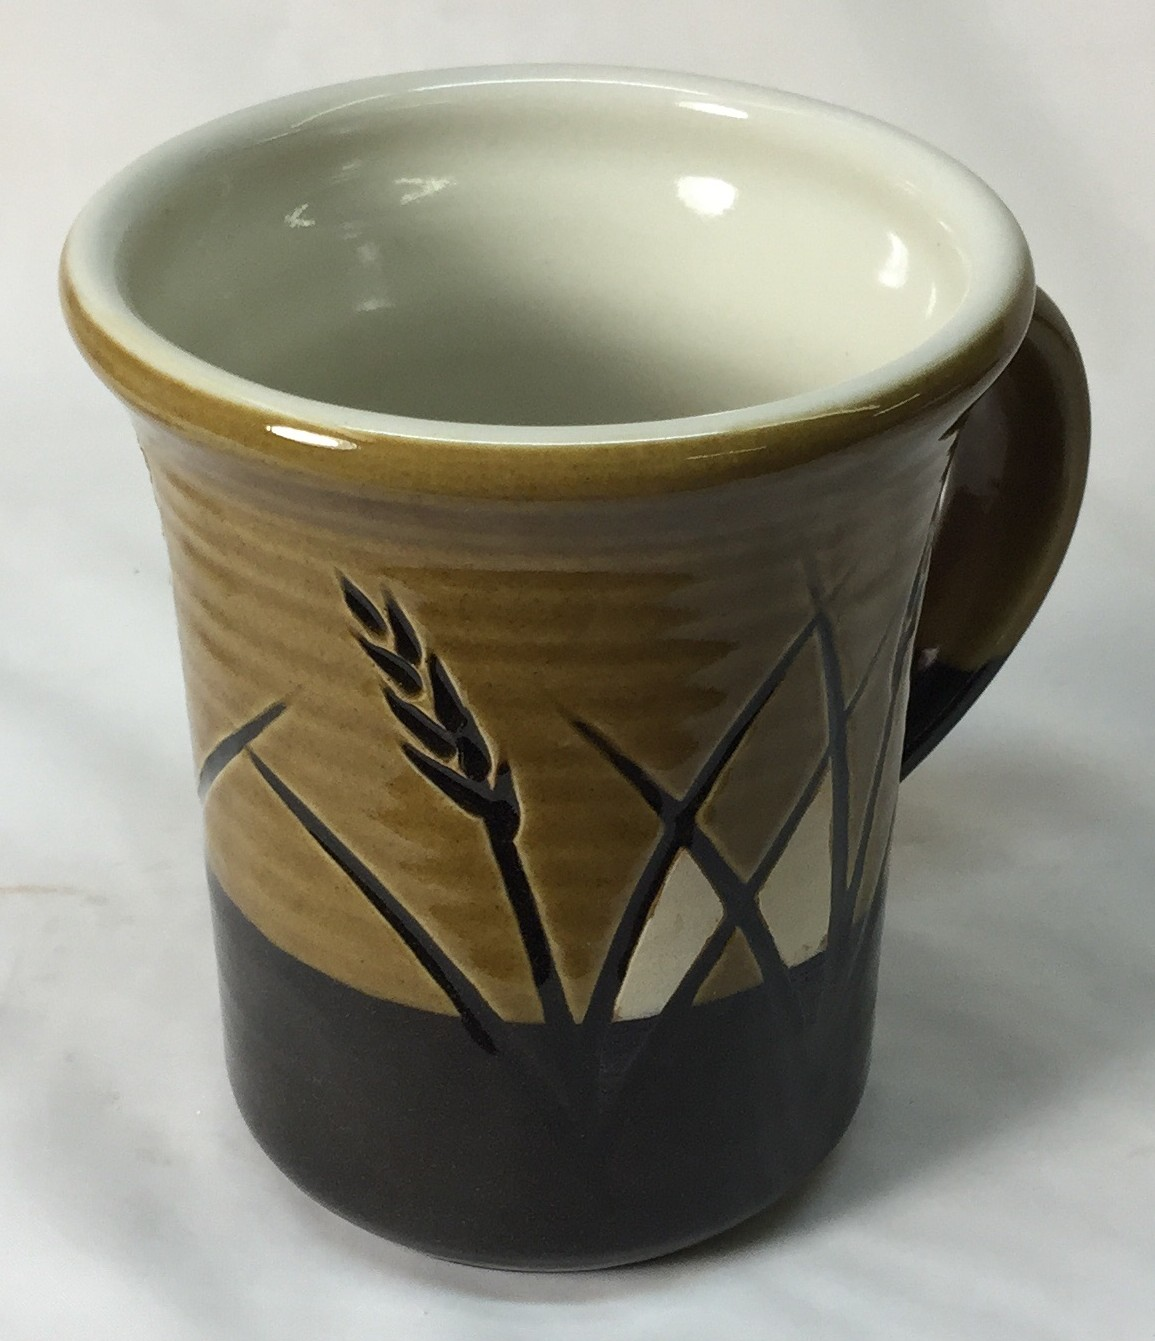 Mug made from a cone 6 black-burning stoneware body